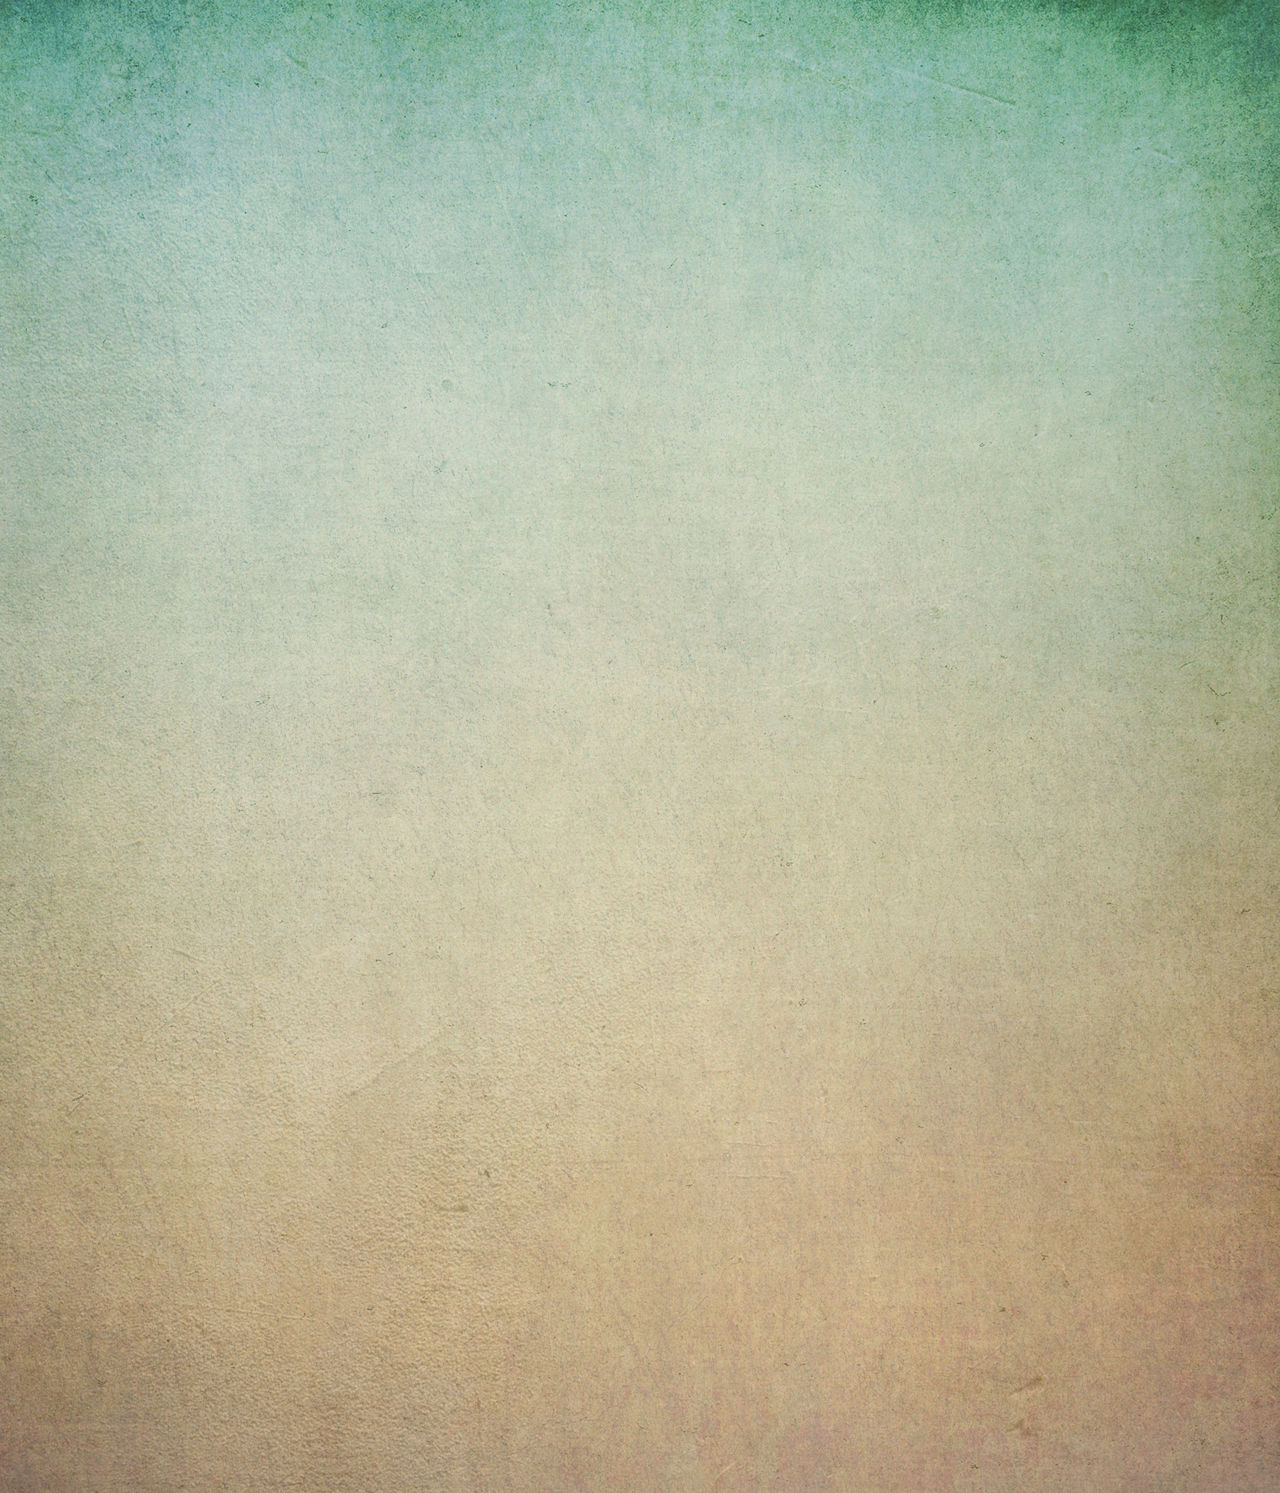 Abstract Antique Backgrounds Brown Copy Space Dirty Full Frame Ink No People Old-fashioned Painted Image Paper Pastel Colored Retro Styled Textured  Vignette Weathered